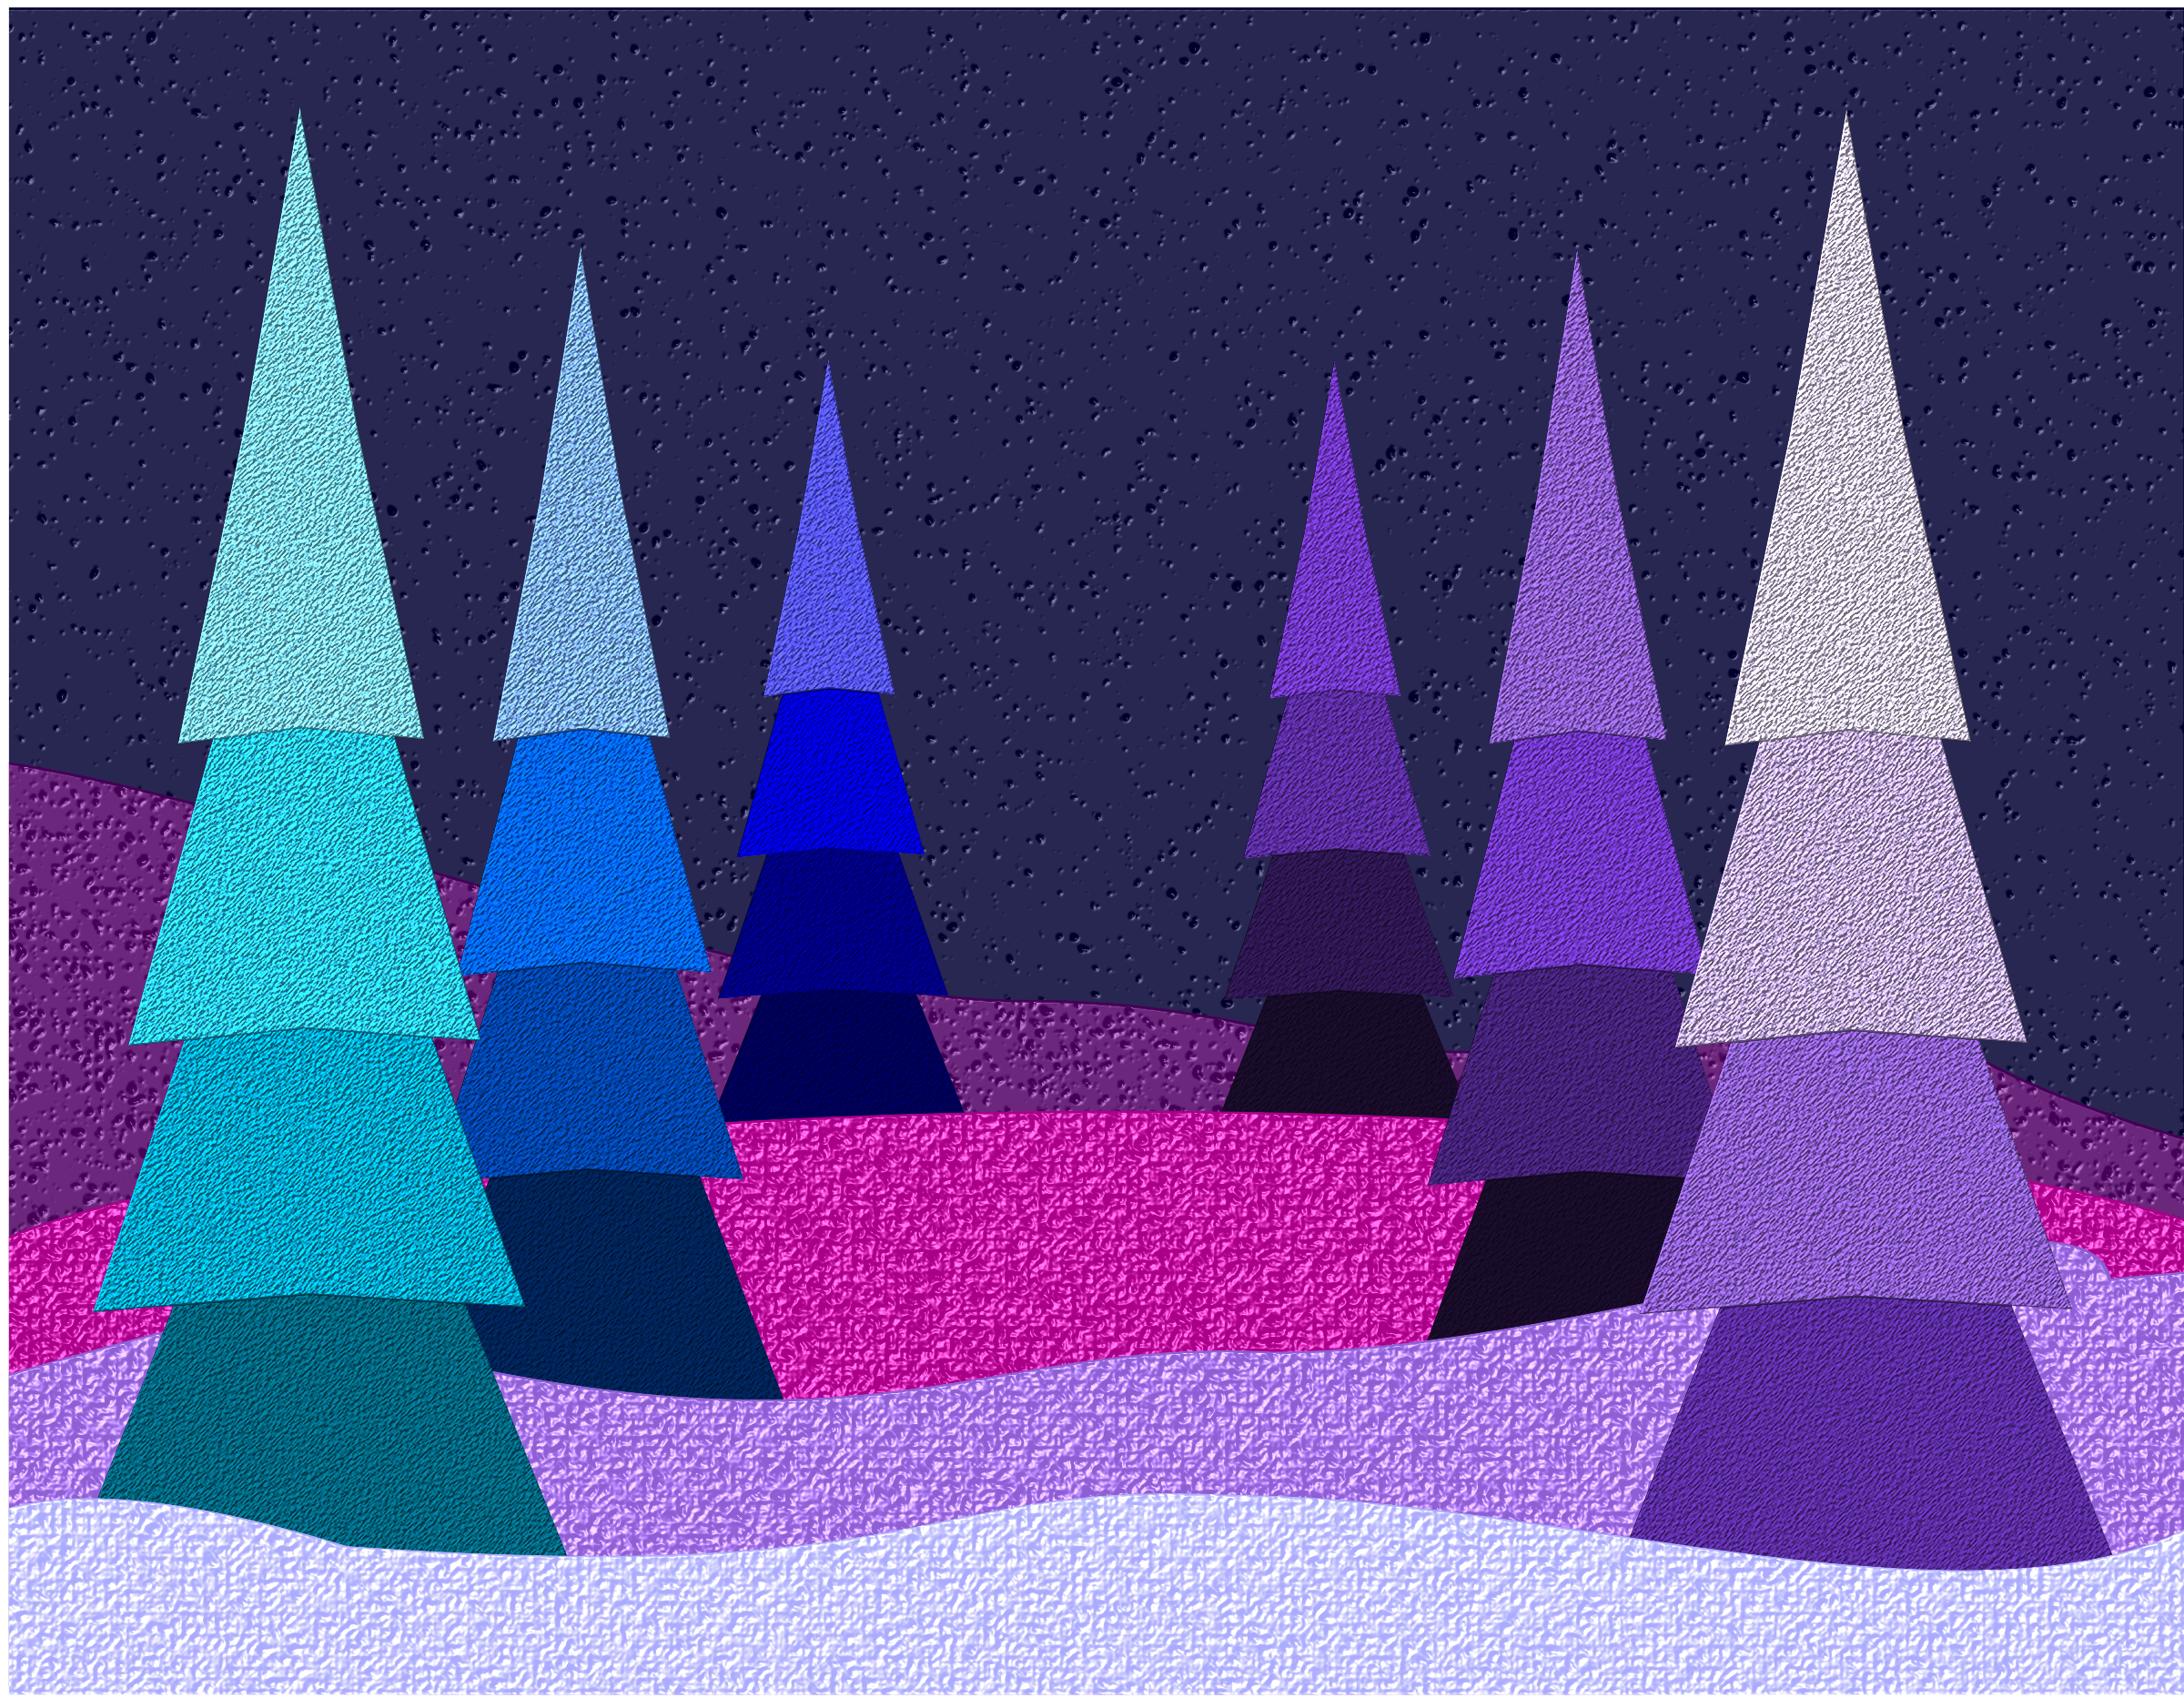 Blue and Purple Christmas Scene vector clipart image.